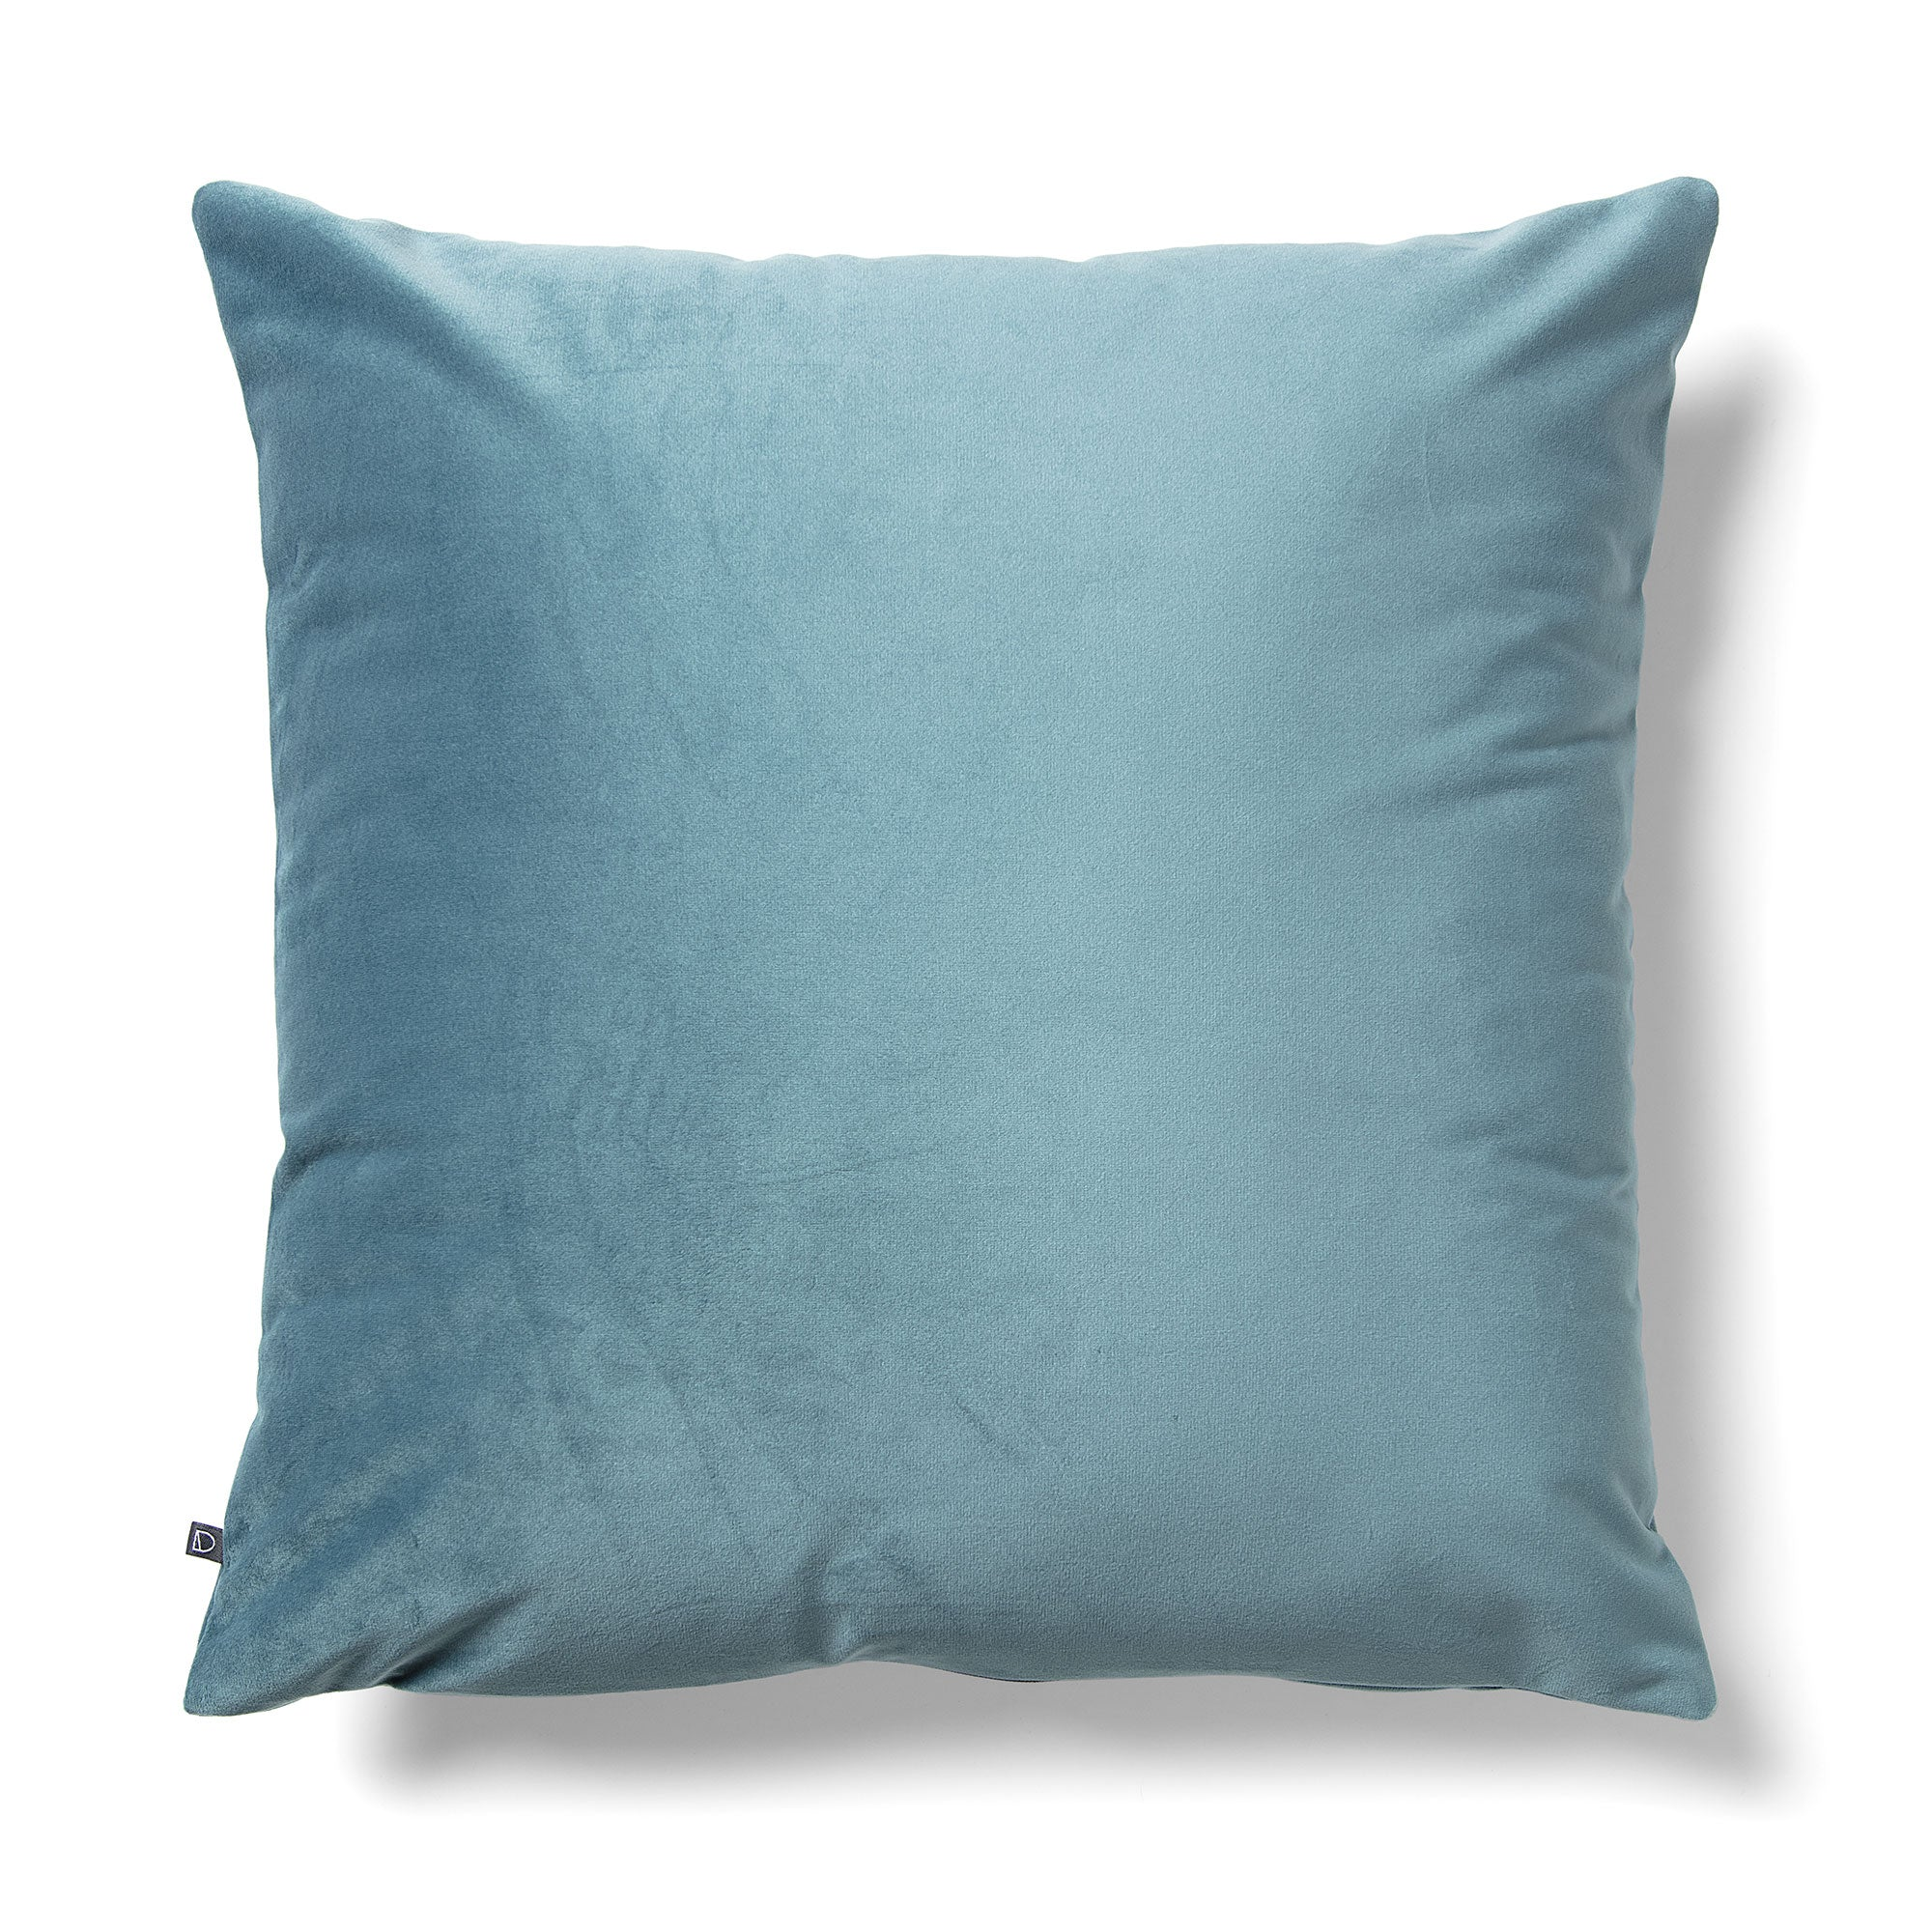 JOLIE Cushion 45x45 turquoise velvet, Cushion - Home-Buy Interiors